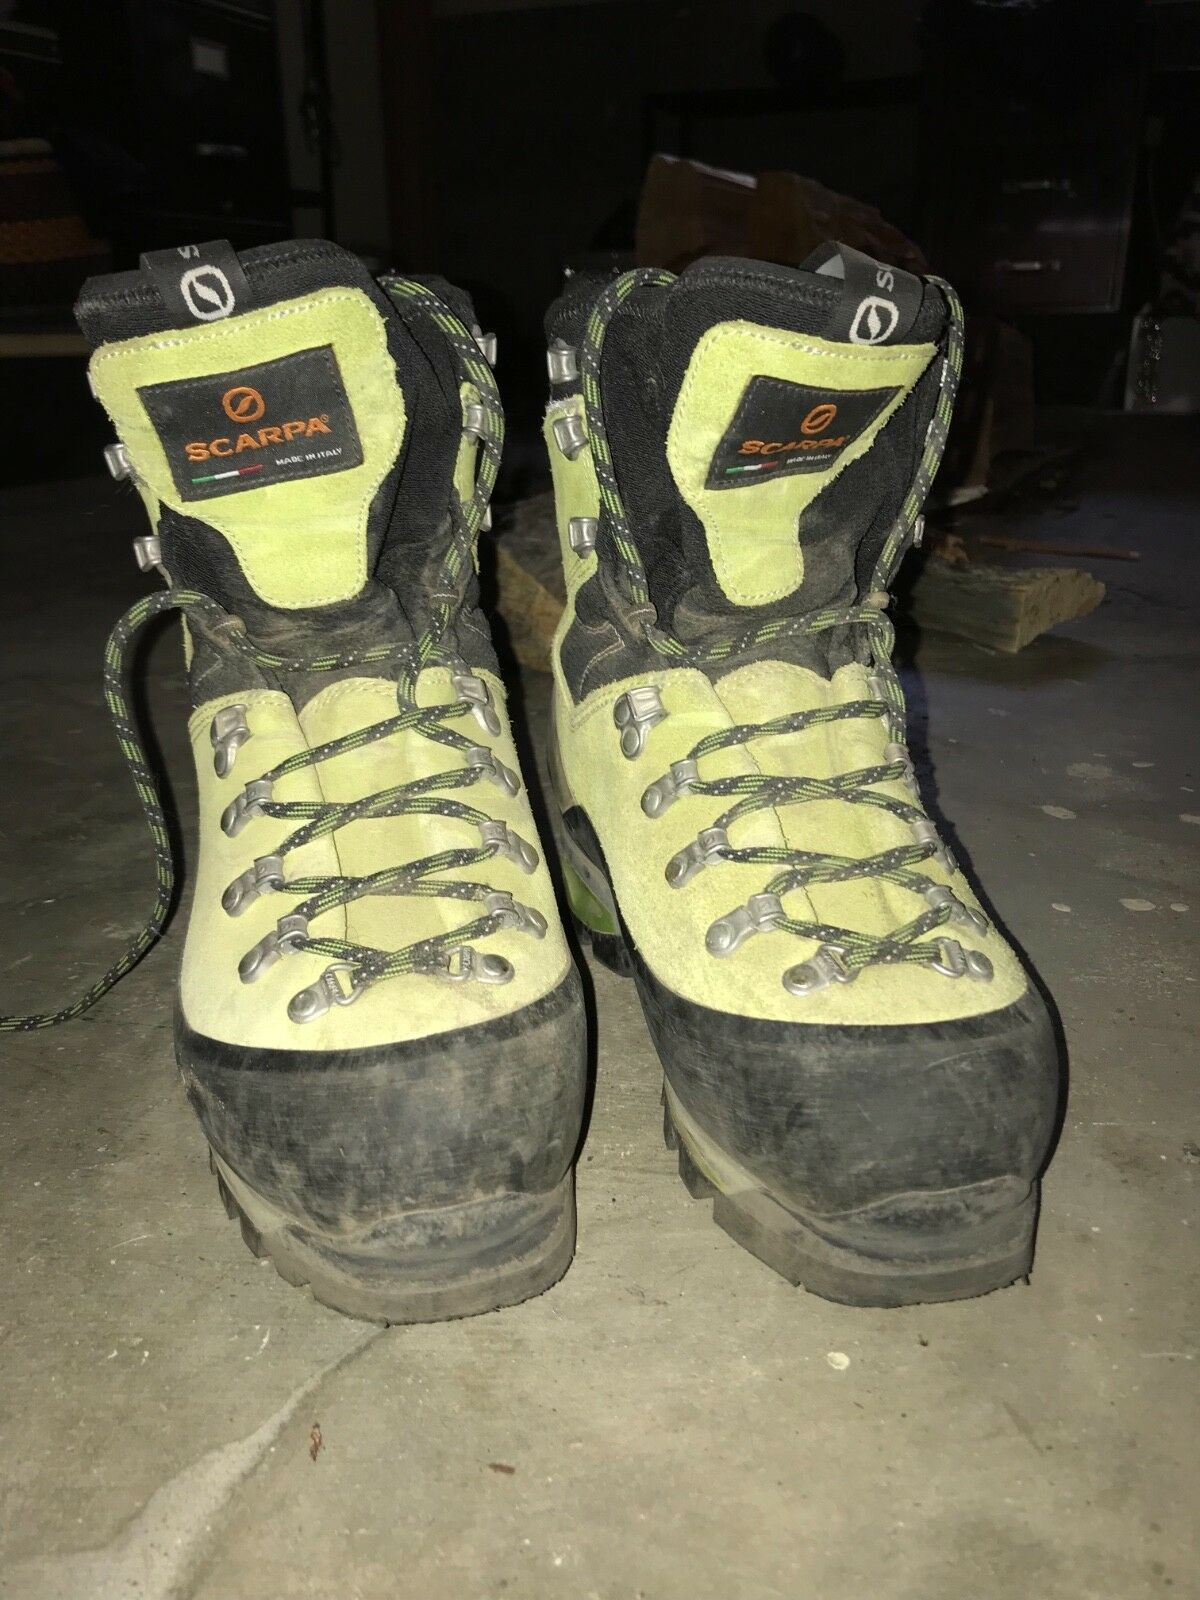 Scarpa Mont  white GTX Mountaineering Boots  free shipping!